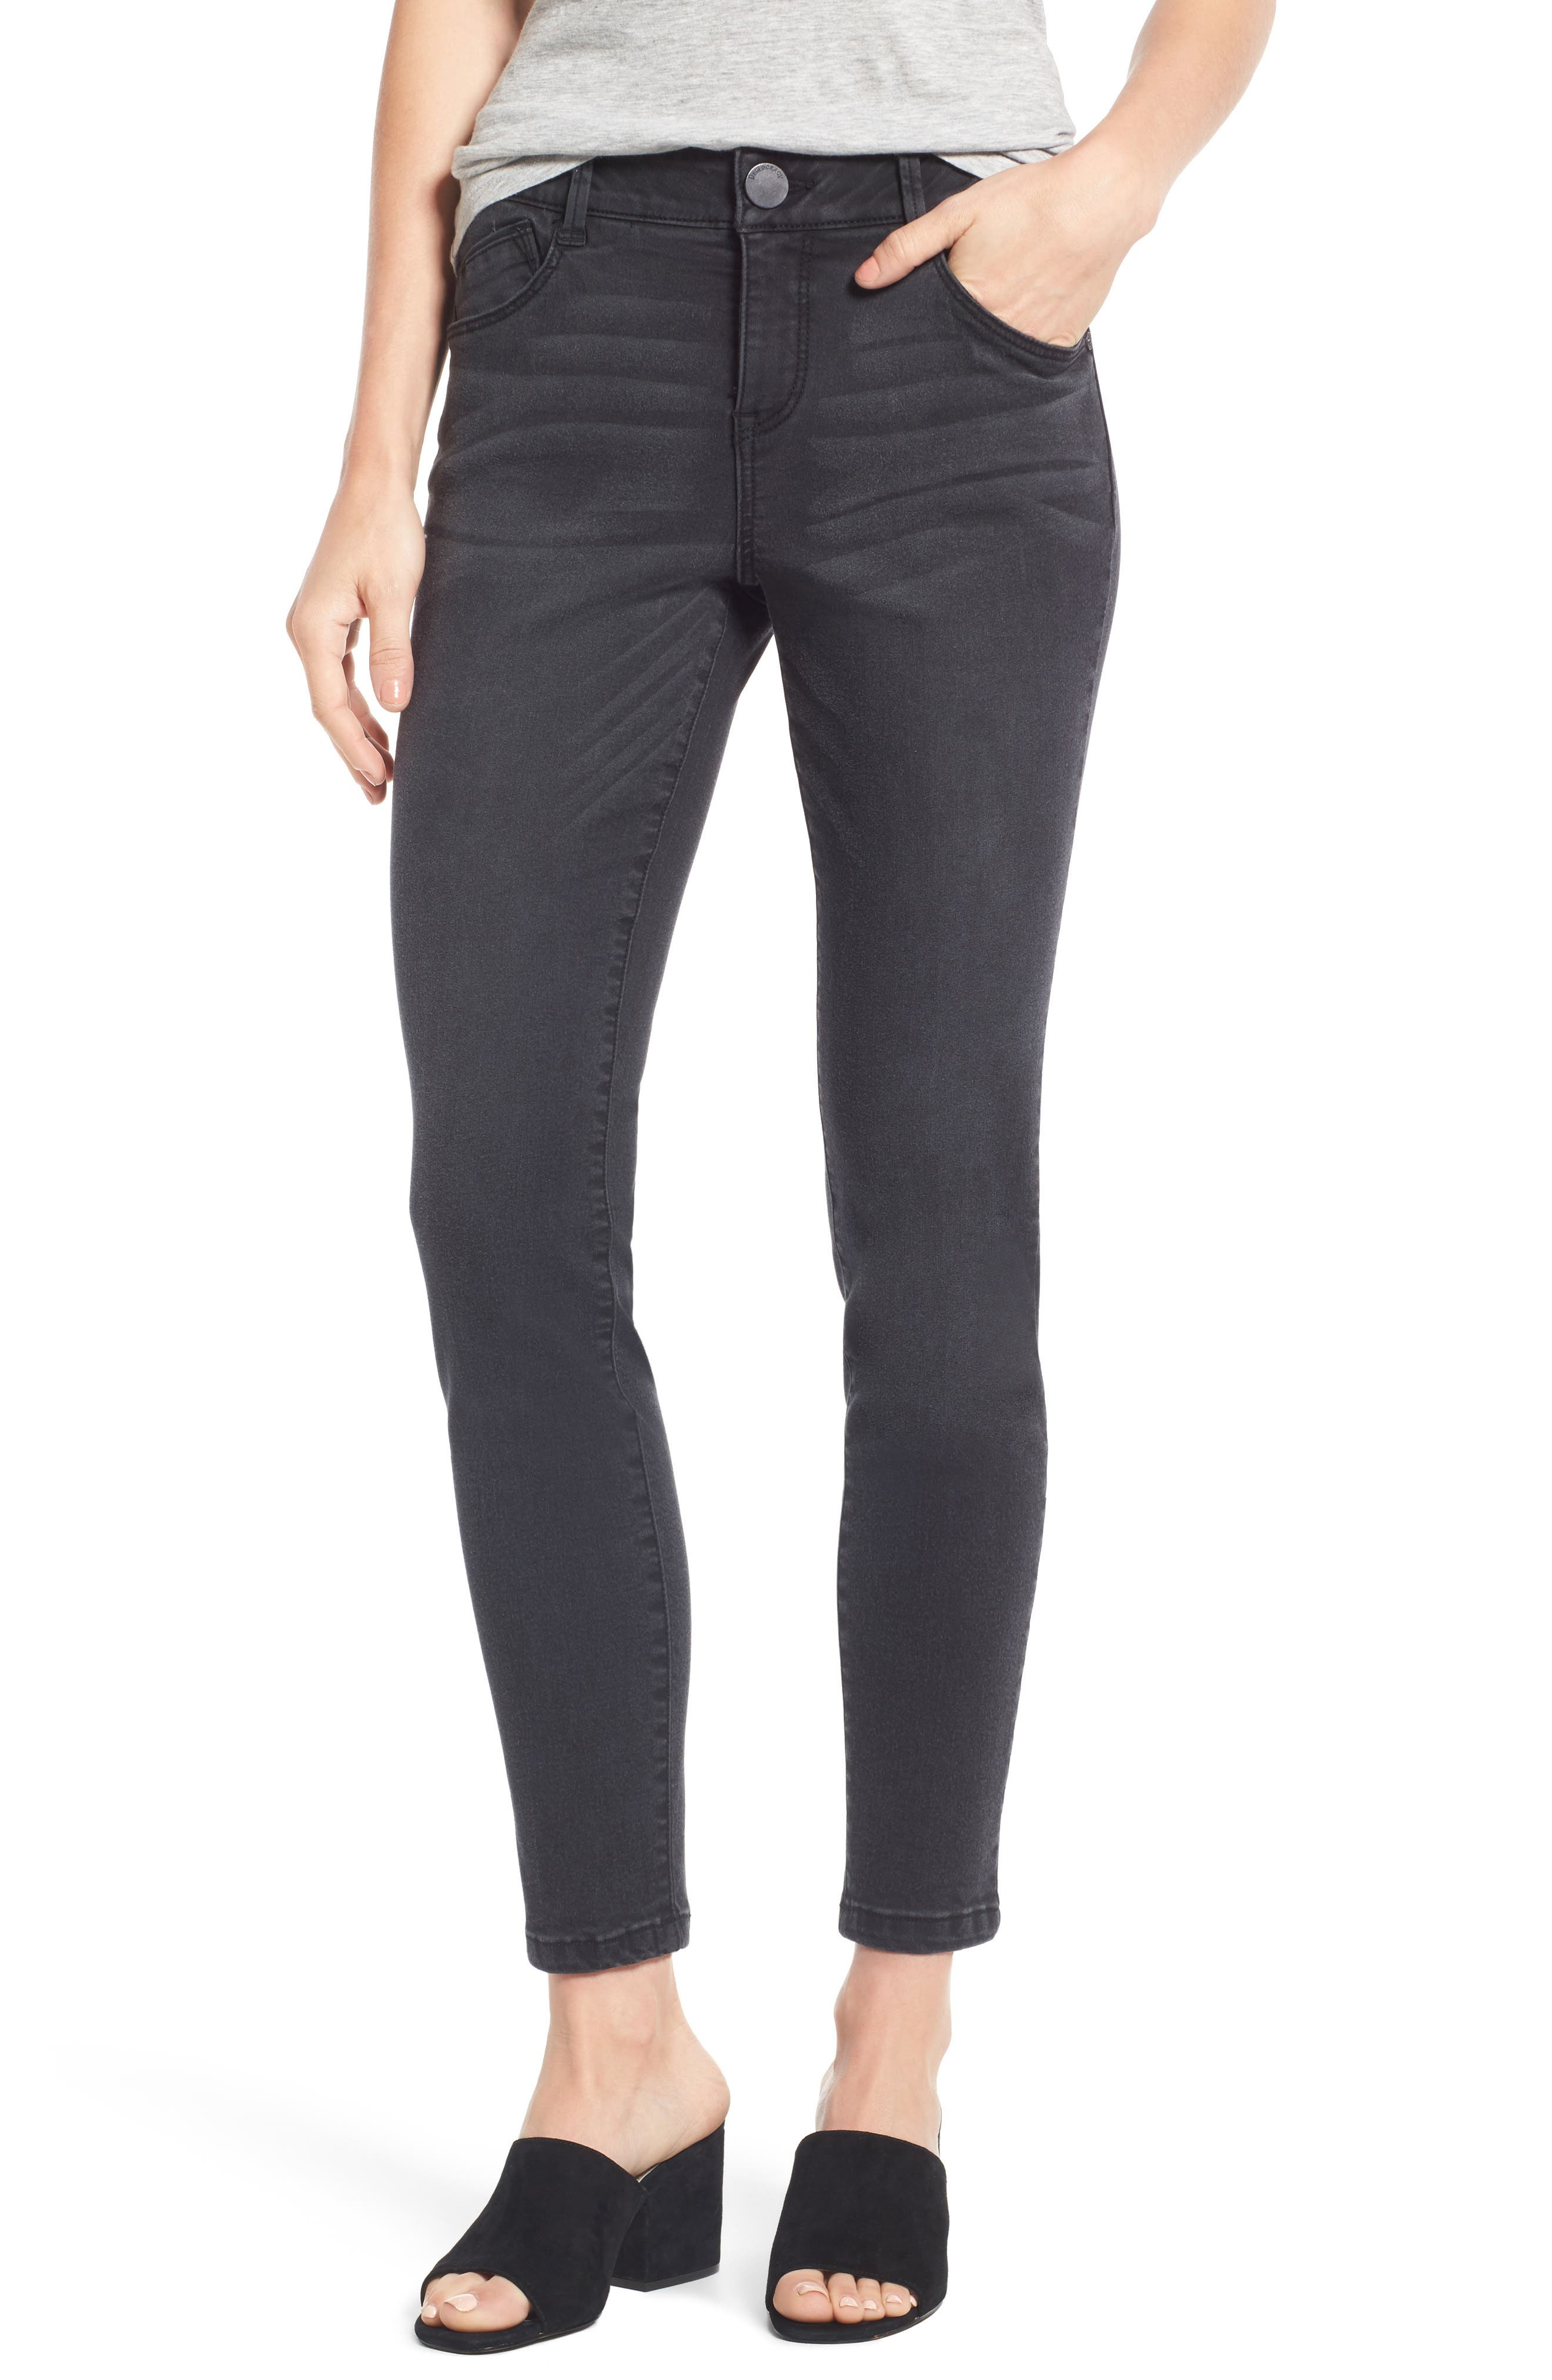 Ab-solution Stretch Ankle Skinny Jeans,                         Main,                         color, Grey